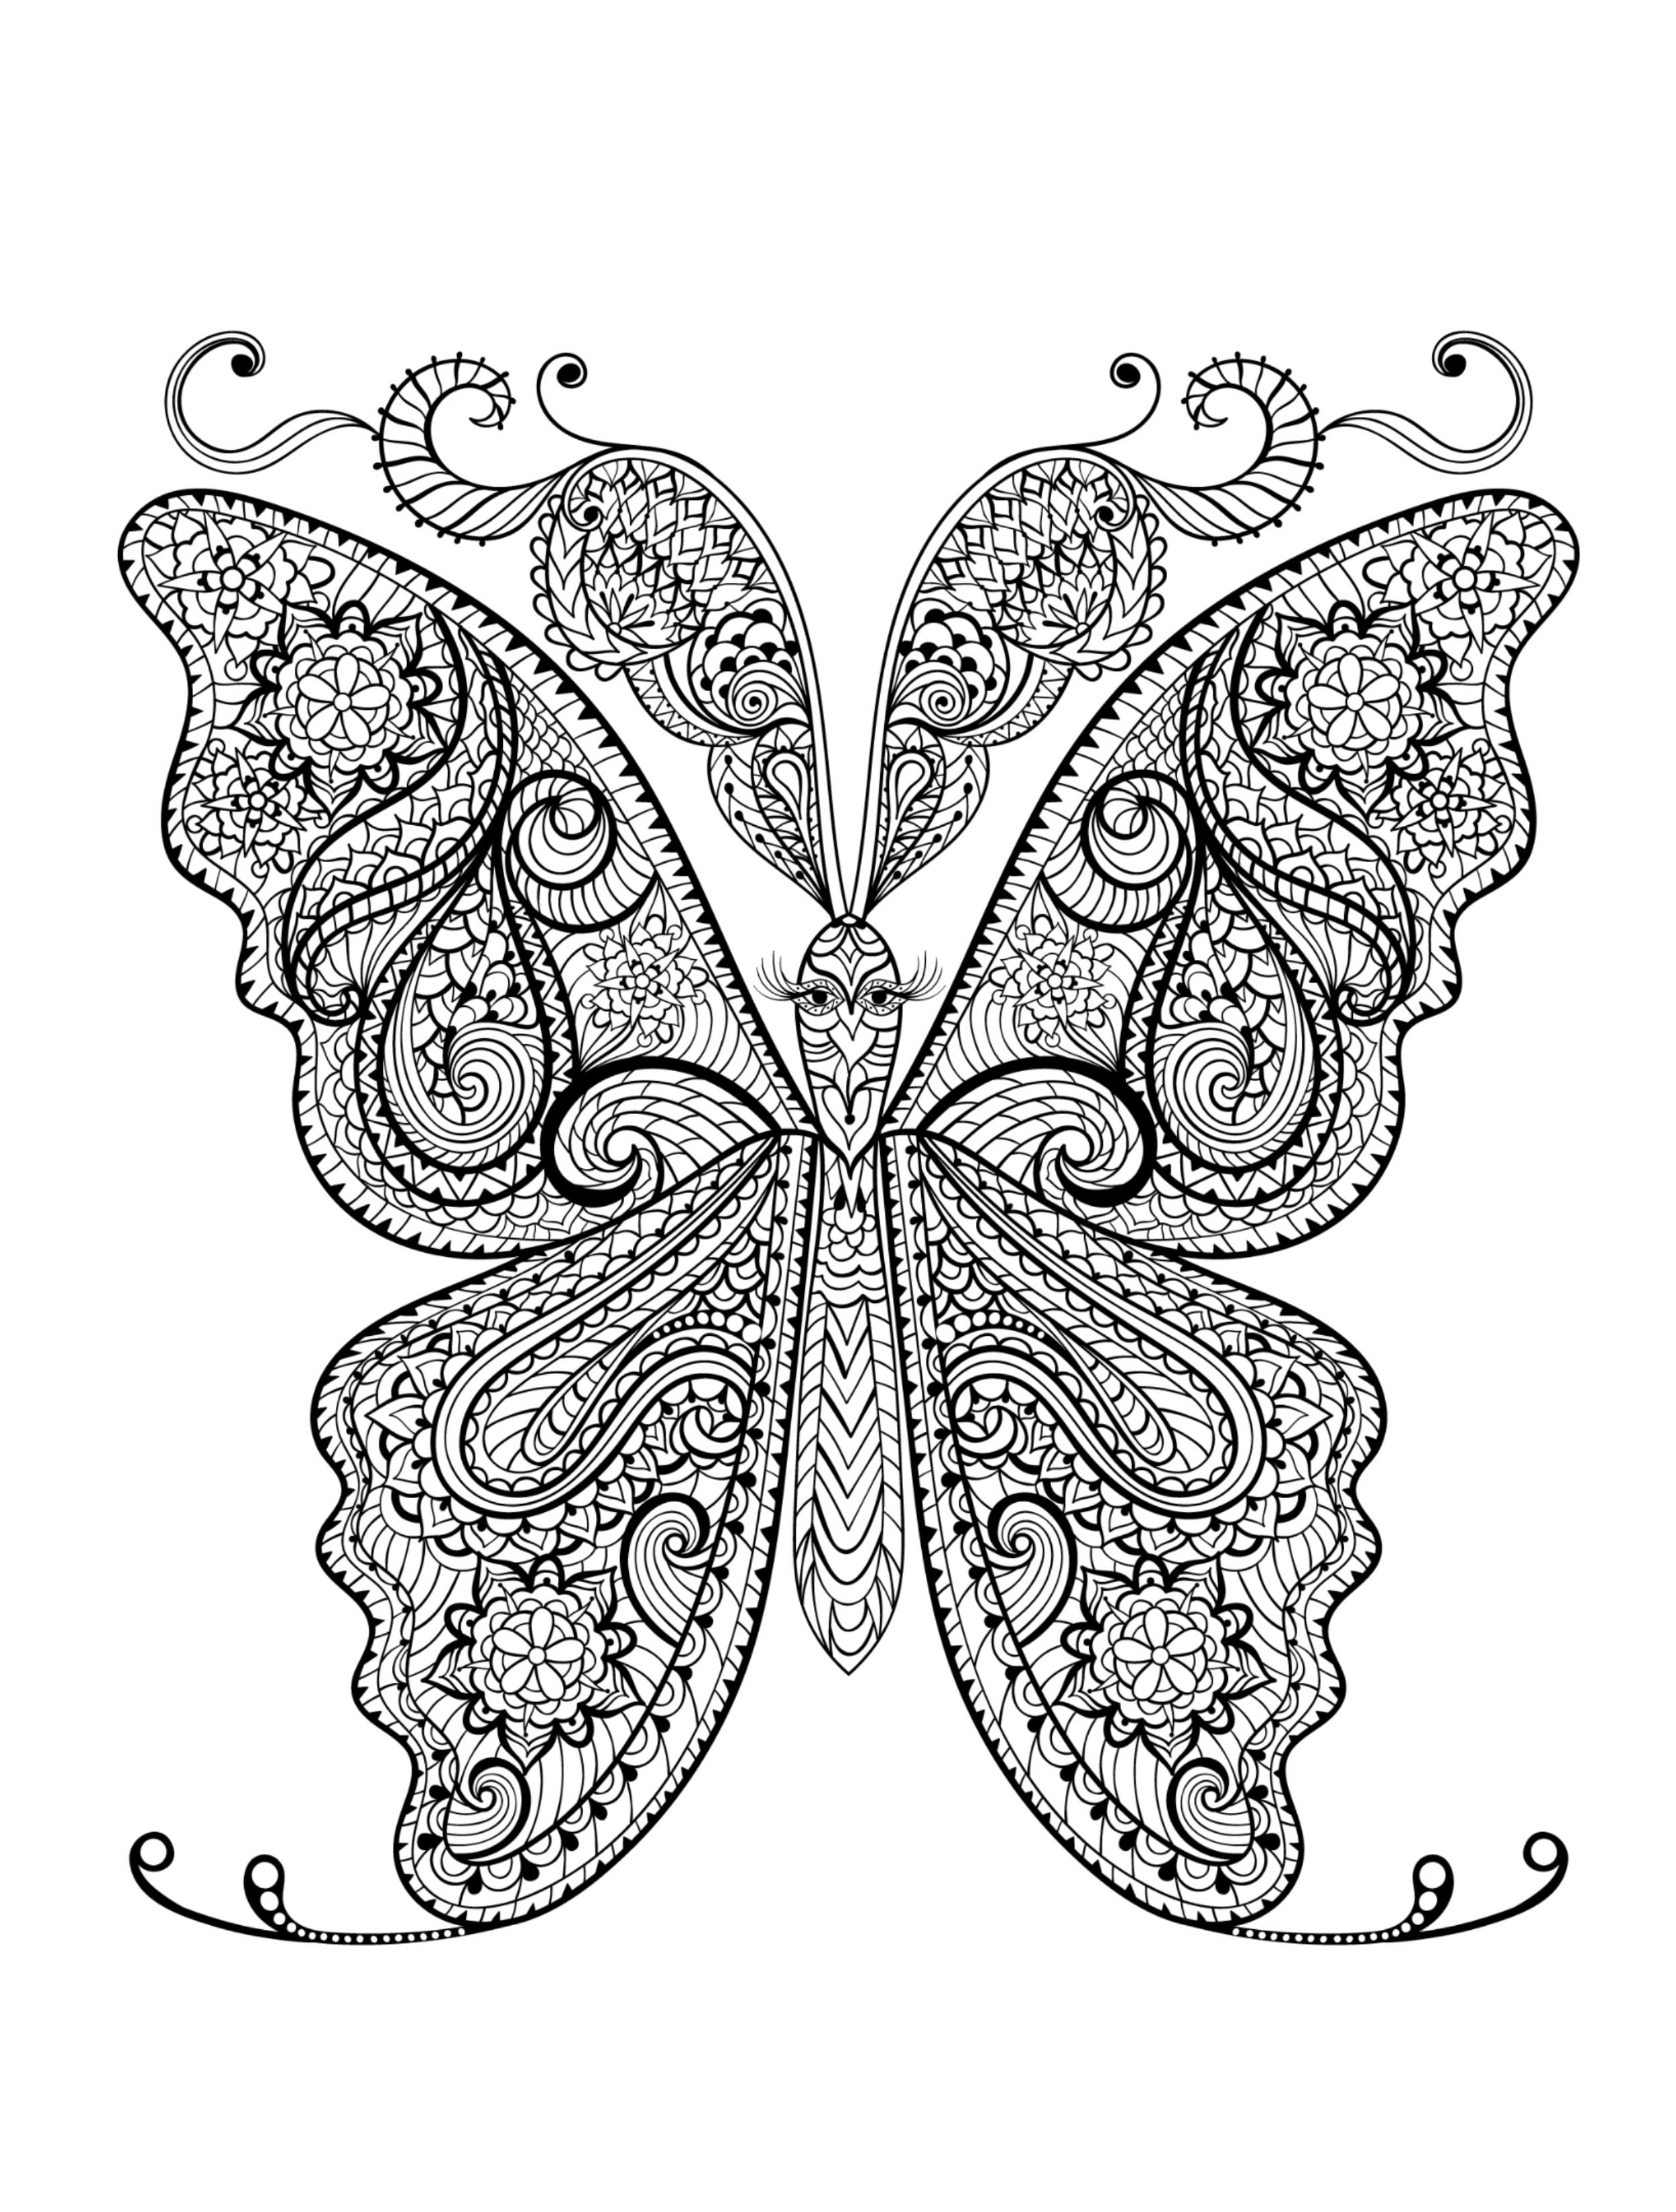 Animal Coloring Pages For Adults 79 With Animal Coloring Pages For